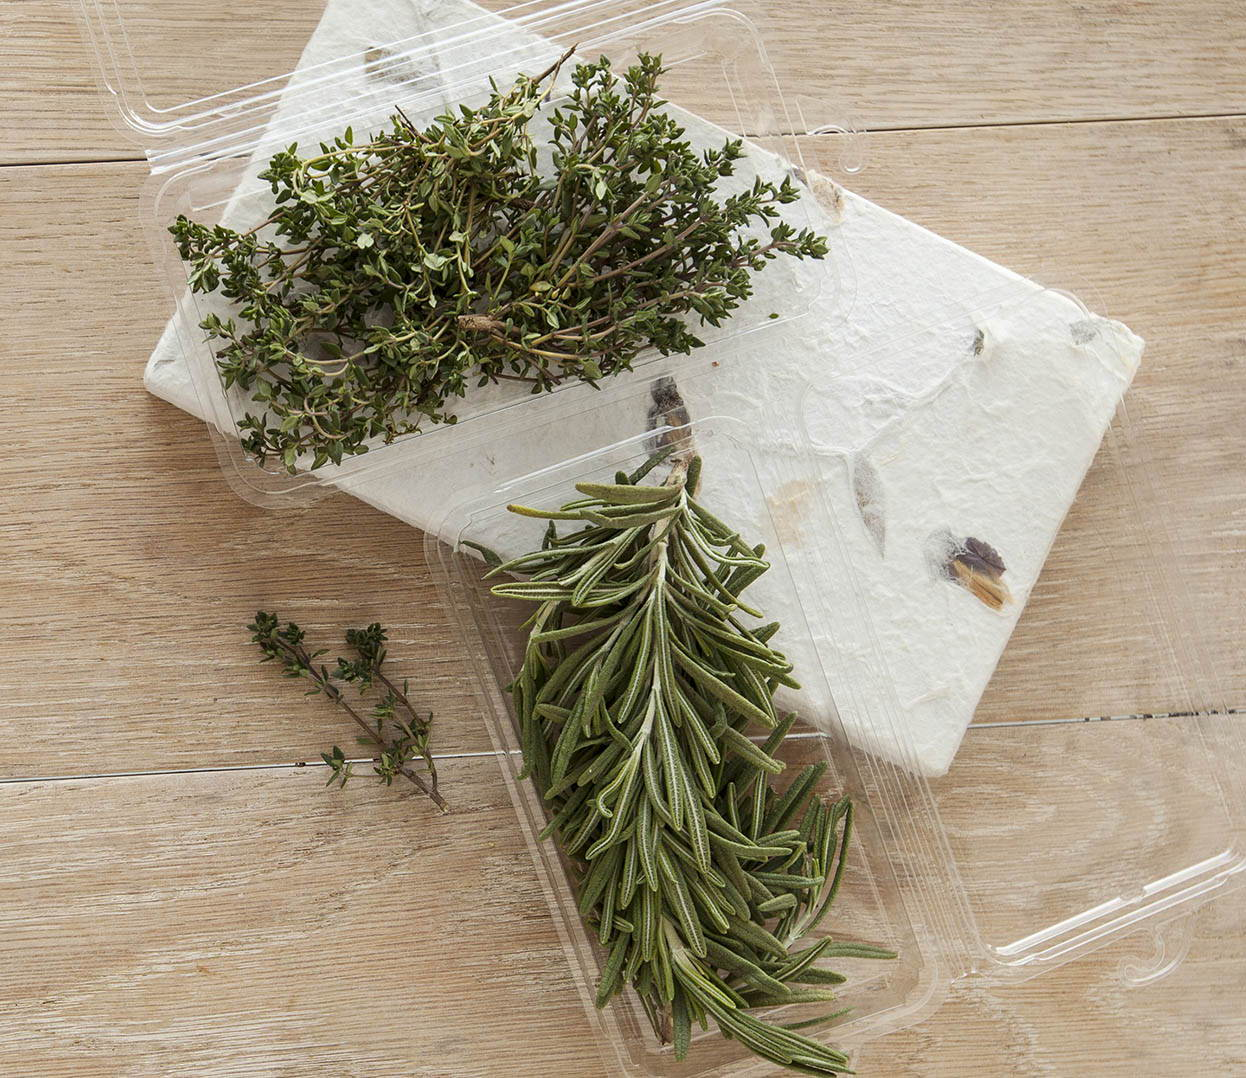 containers for fresh herbs made from biodegradable plant-based material